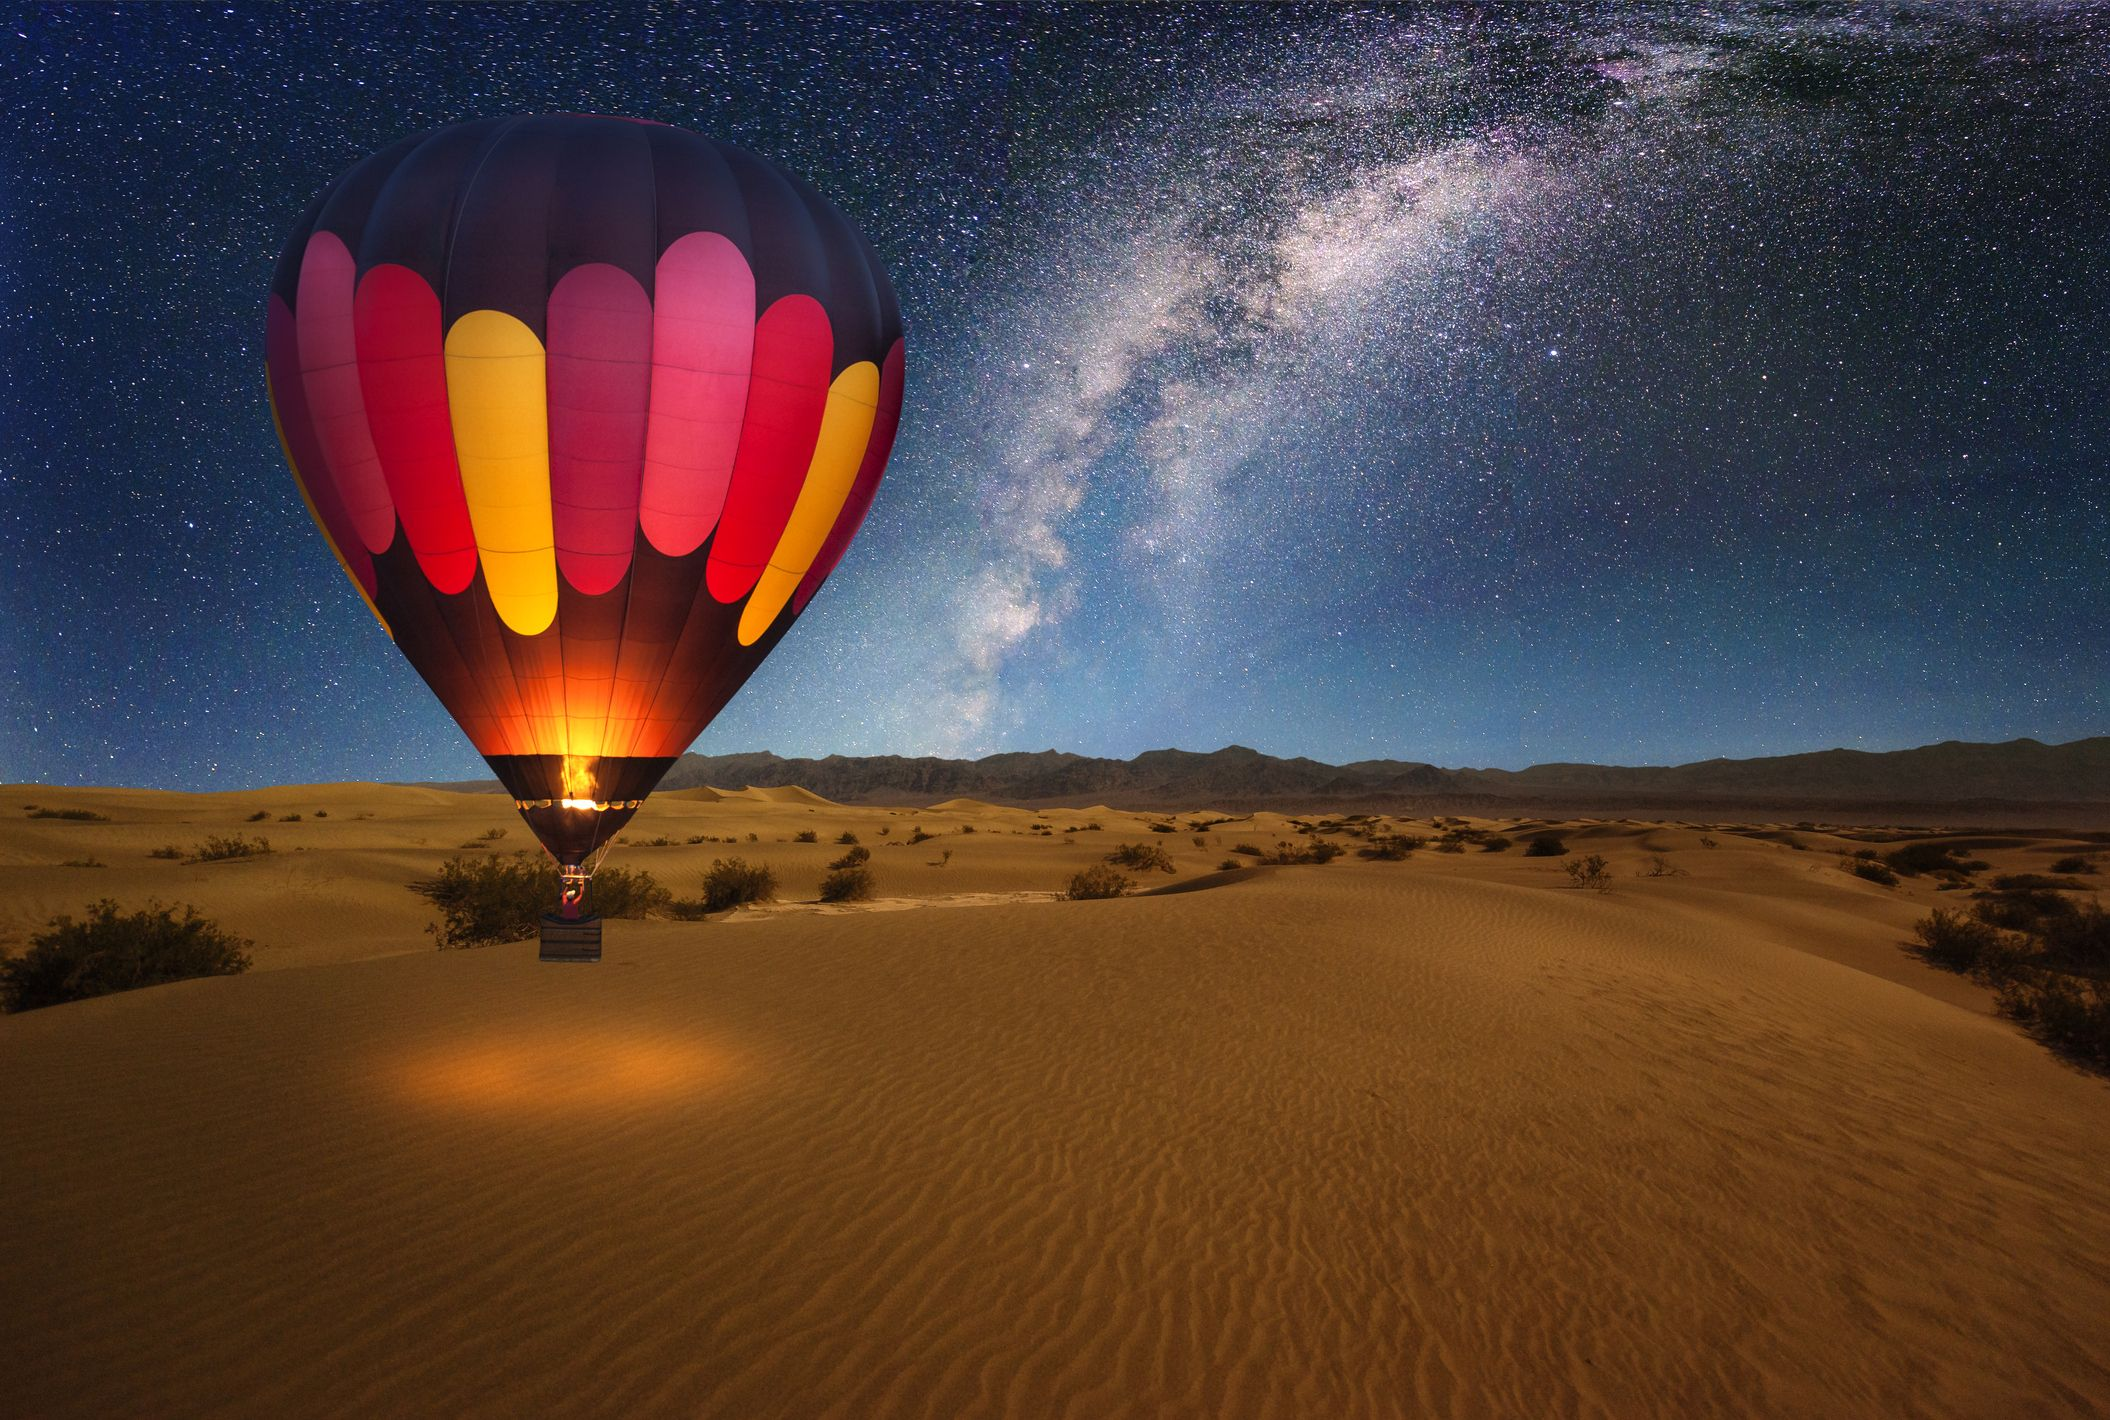 Let's Think About Using Hot Air Balloons to Get to Space